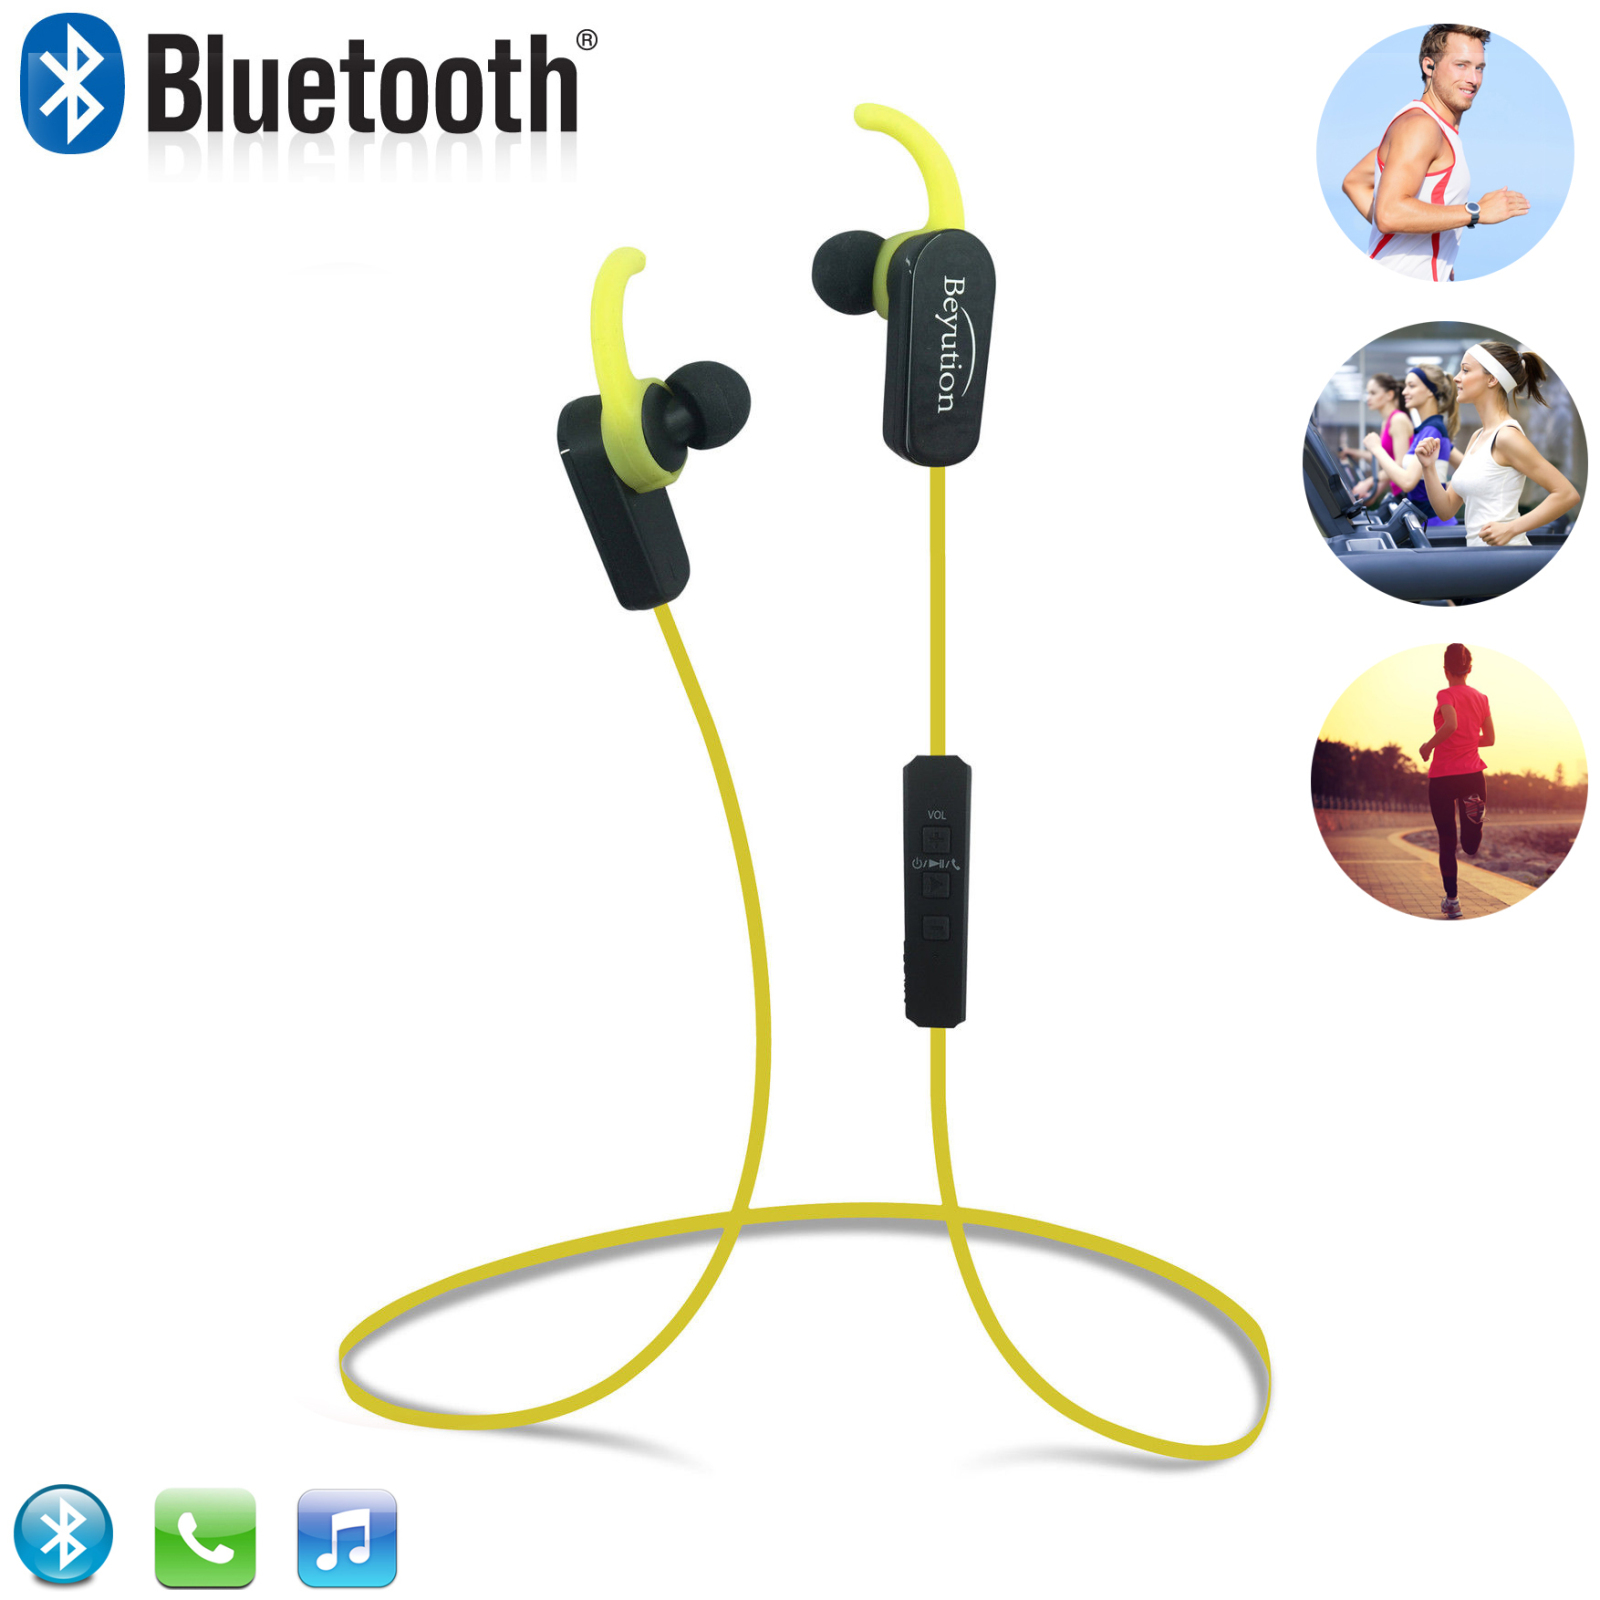 Beyution BT508S Bluetooth V4.1 Sport Headphones, Wireless Earbuds for Running Workout, Noise Cancelling Sweatproof Cordless Headset for Gym Use, Earphones w/Mic, iPhone Android Laptop PC (Yellow)